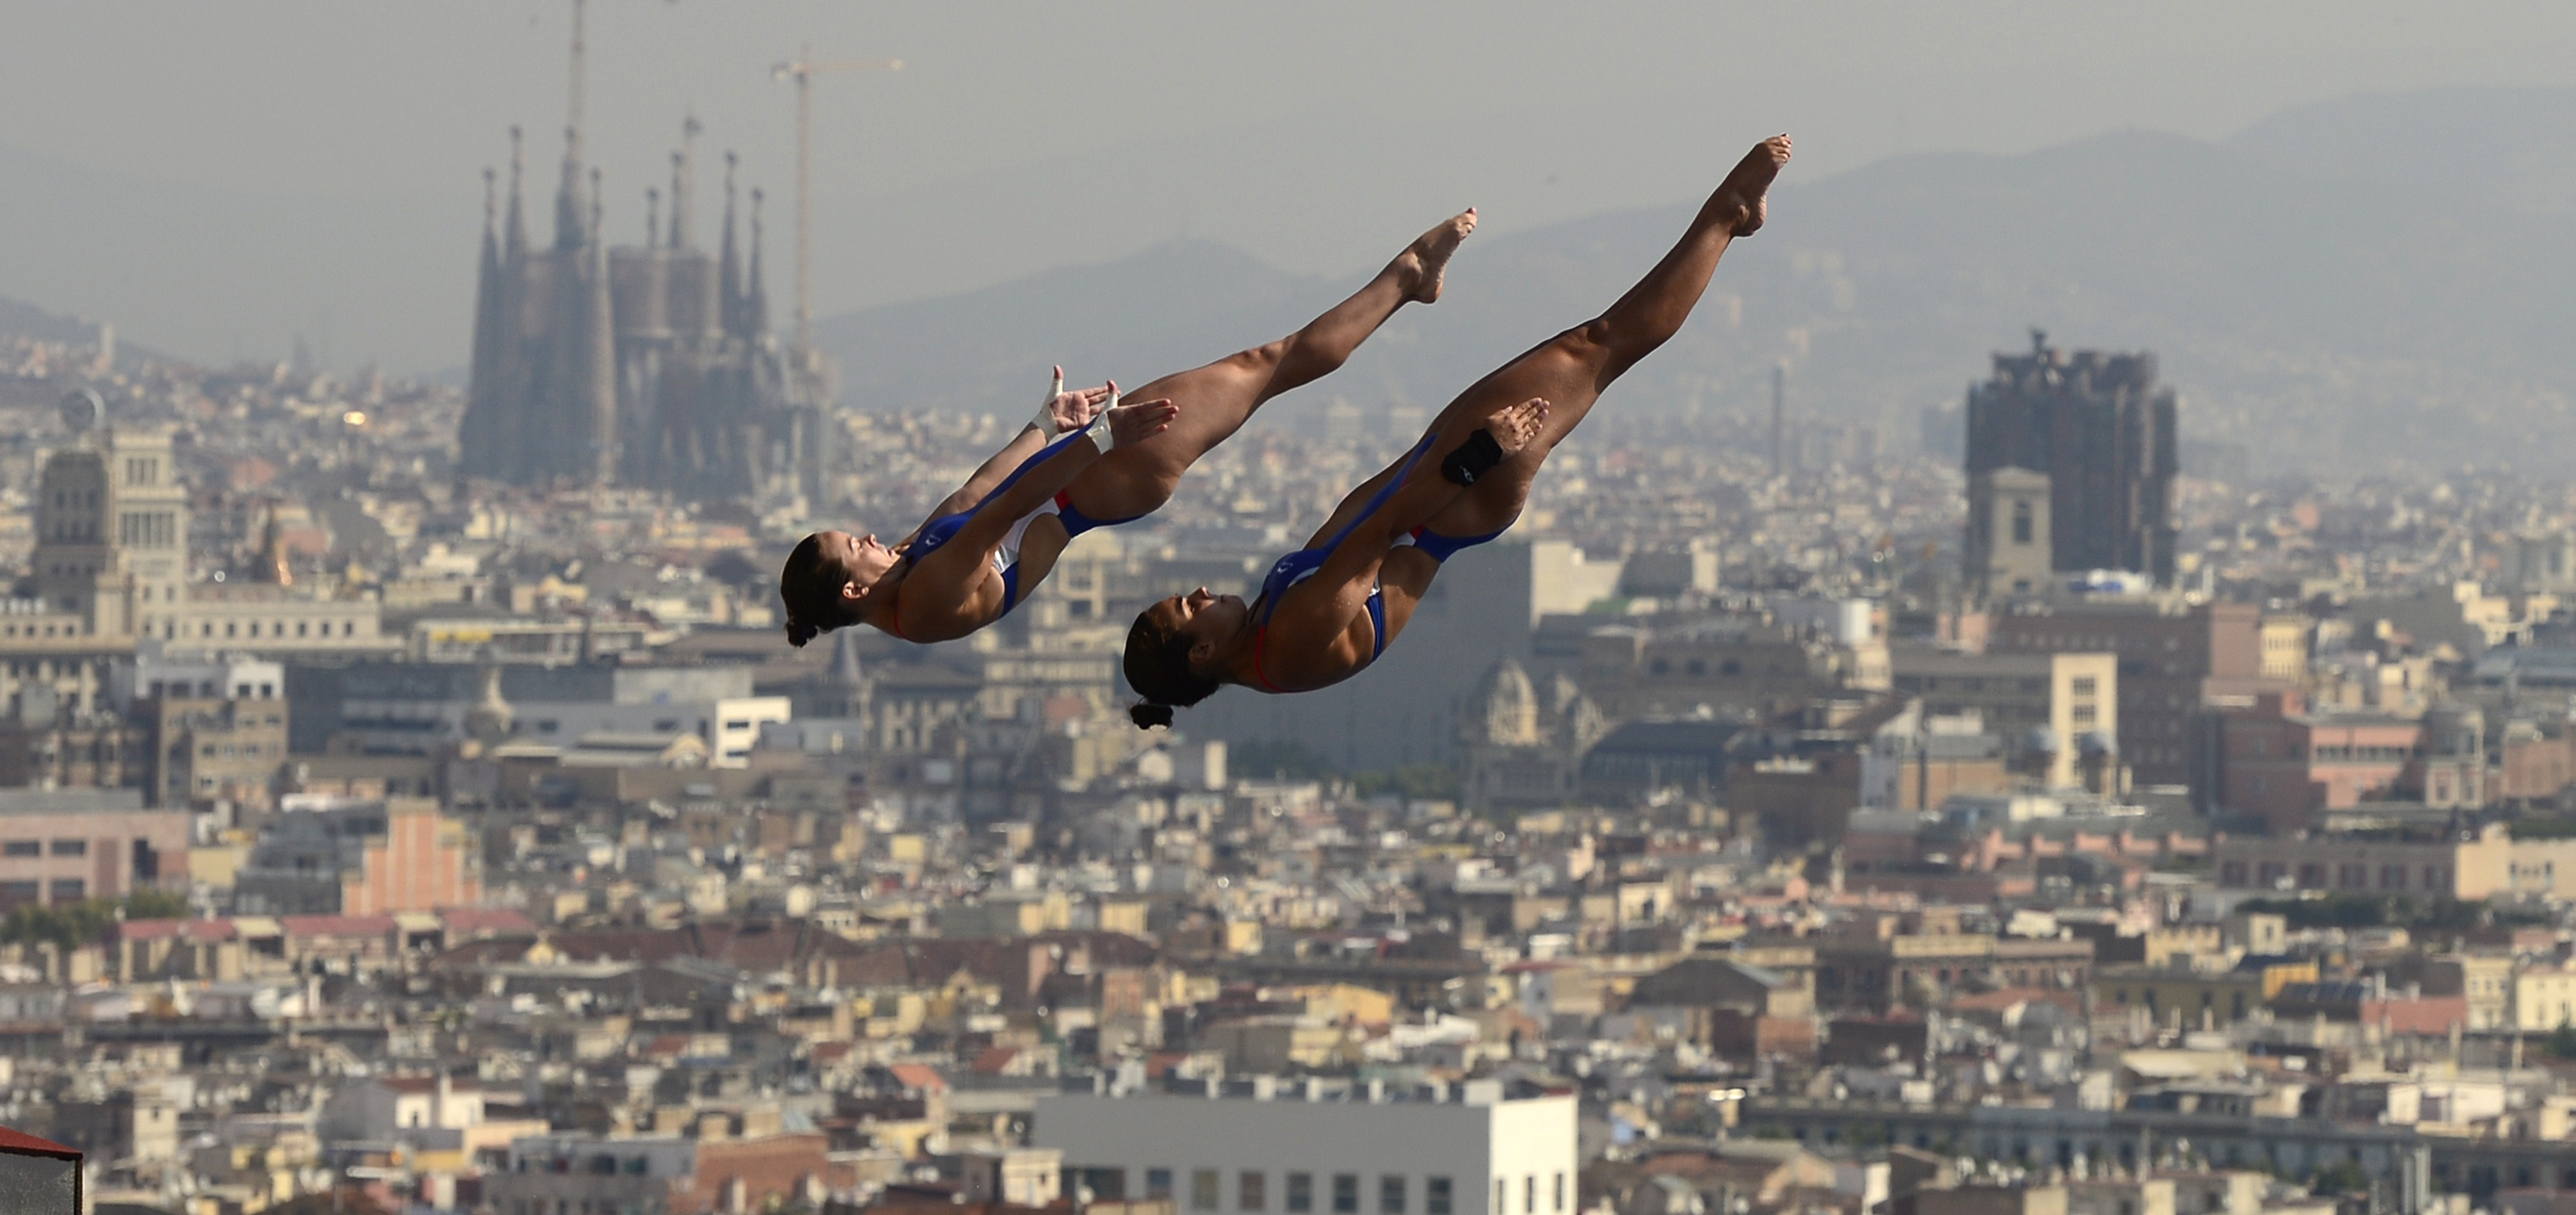 Gallery: FINA Swimming World Championships in Barcelona, Spain